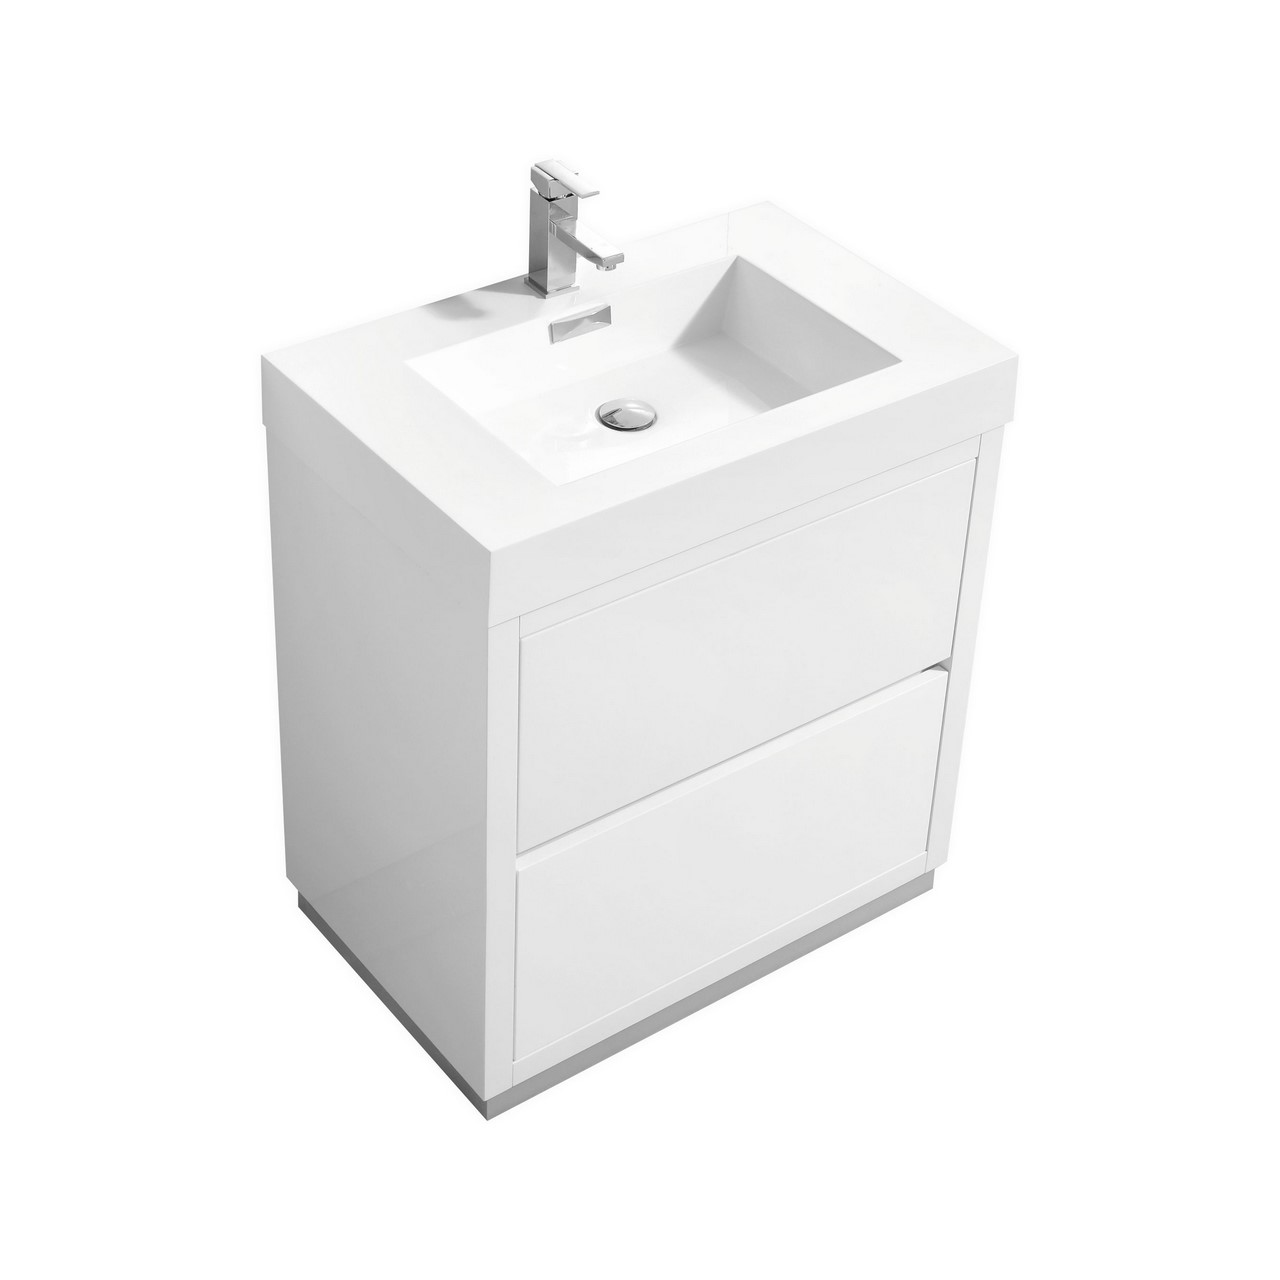 Bliss 30 high gloss white free standing modern bathroom vanity for White bathroom cabinets free standing